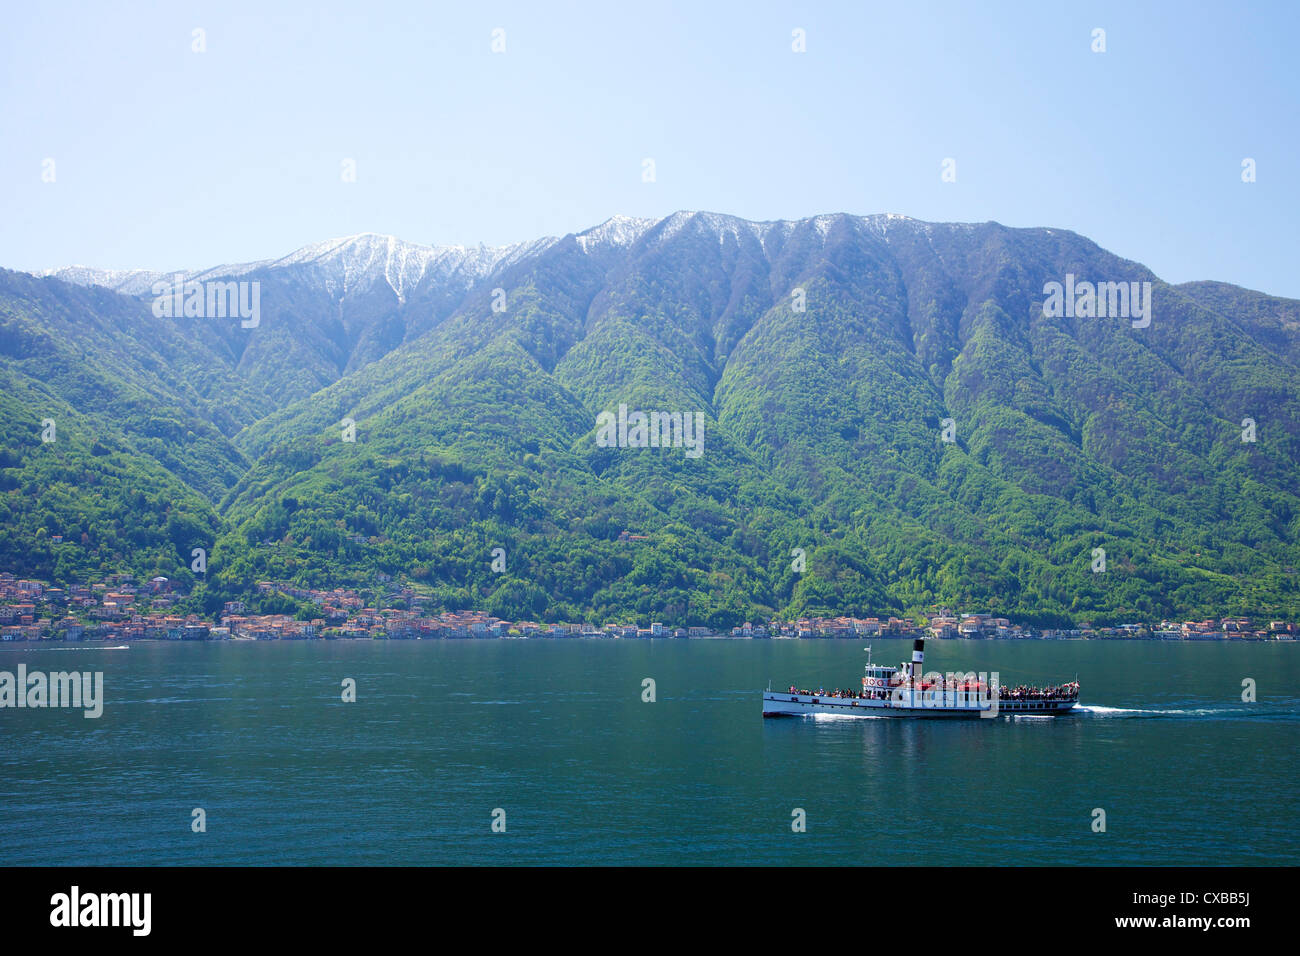 Steamer ferry boat Milano on Lake Como in spring sunshine, Italian Lakes, Northern Italy, Europe - Stock Image